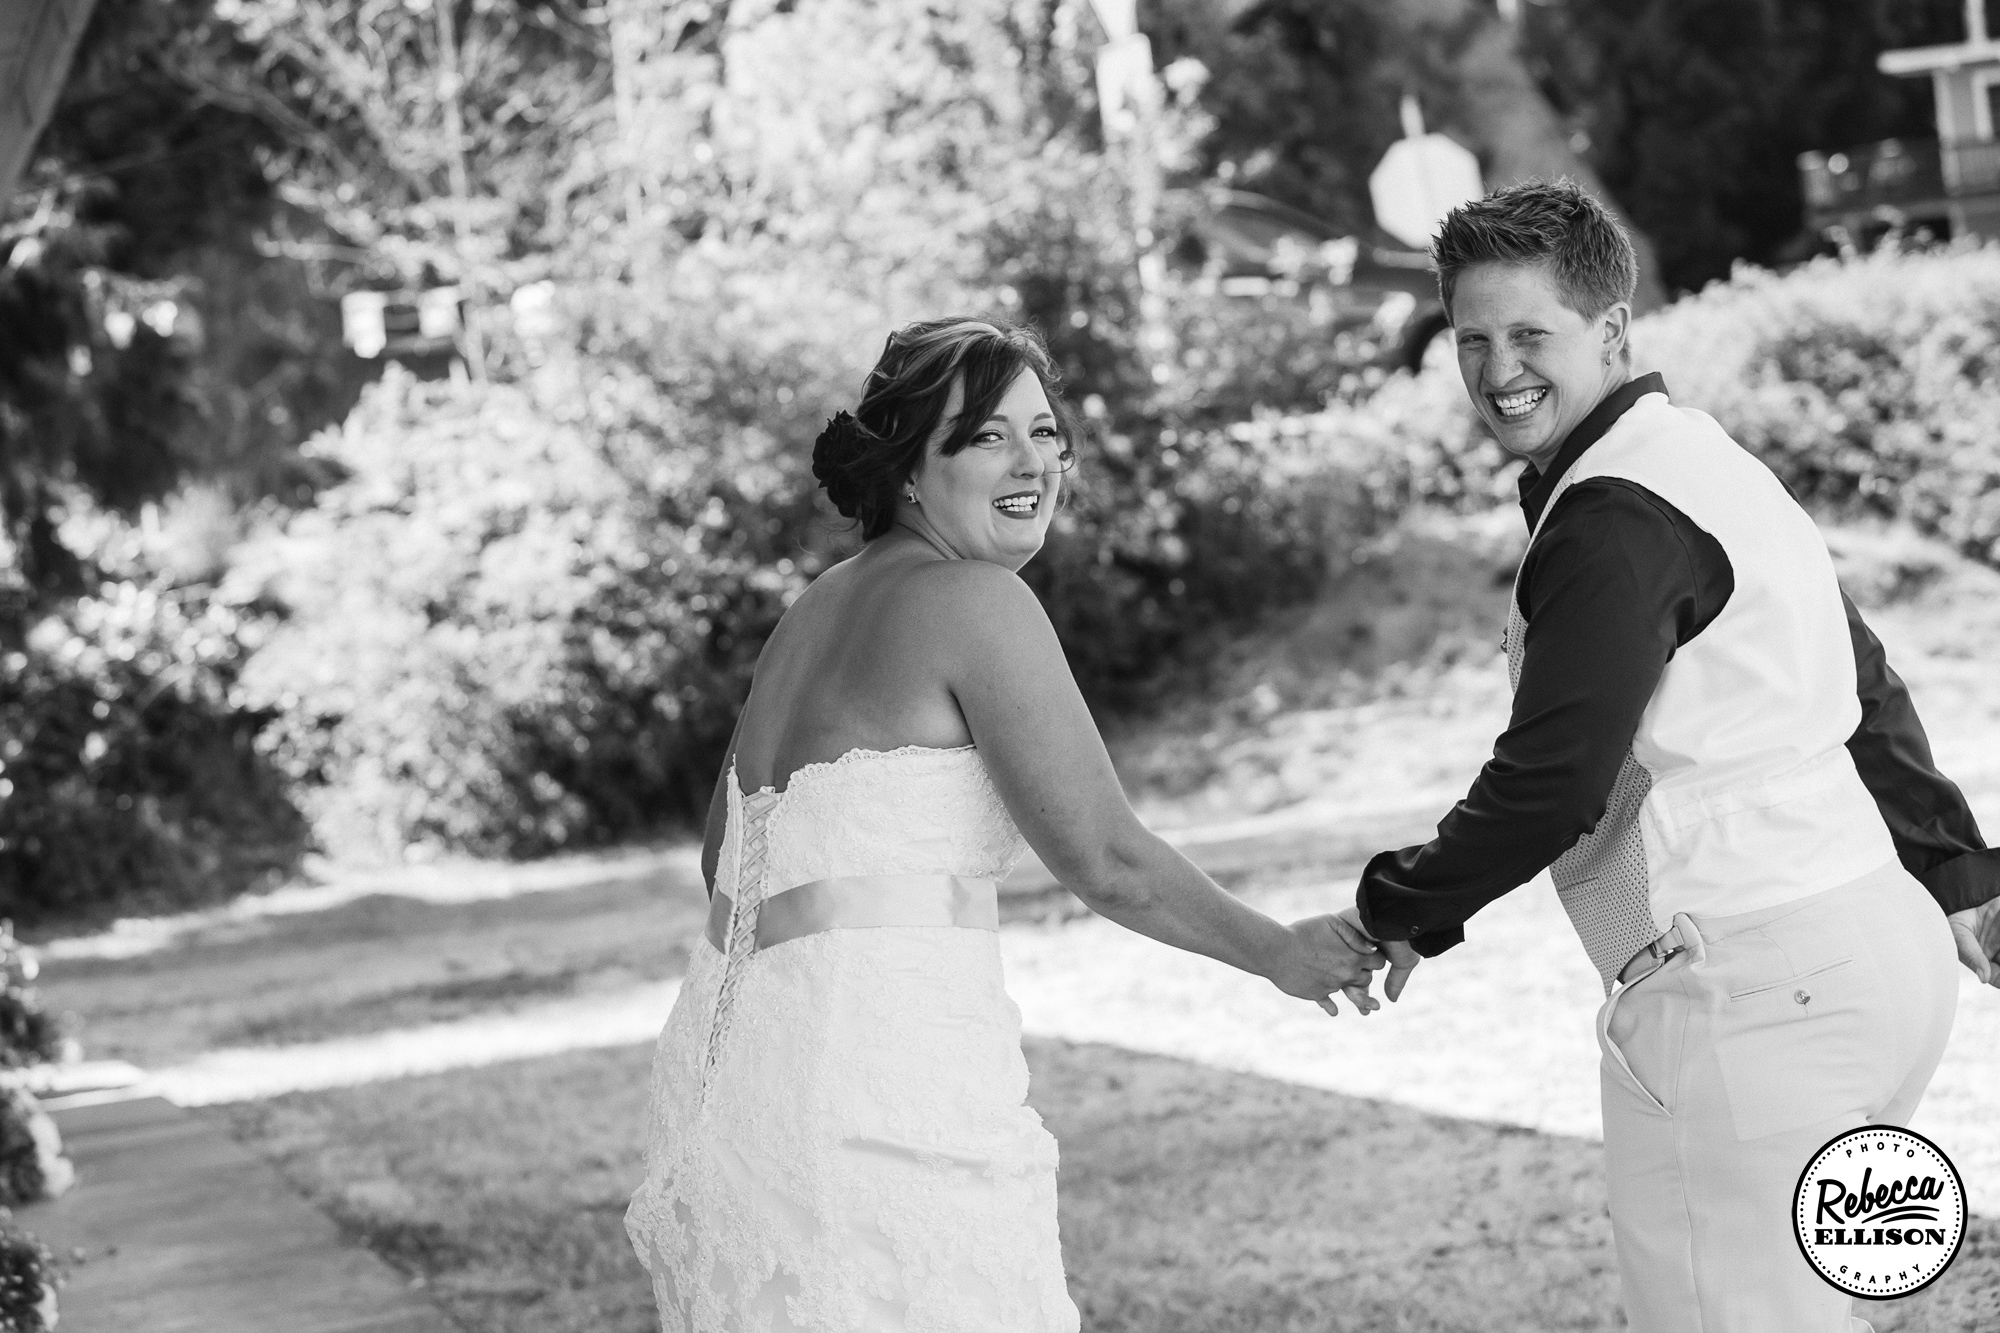 Same Sex couple smiles after their wedding ceremony in Outdoor black and white wedding portraits photographed by Seattle wedding photographer Rebecca Ellison